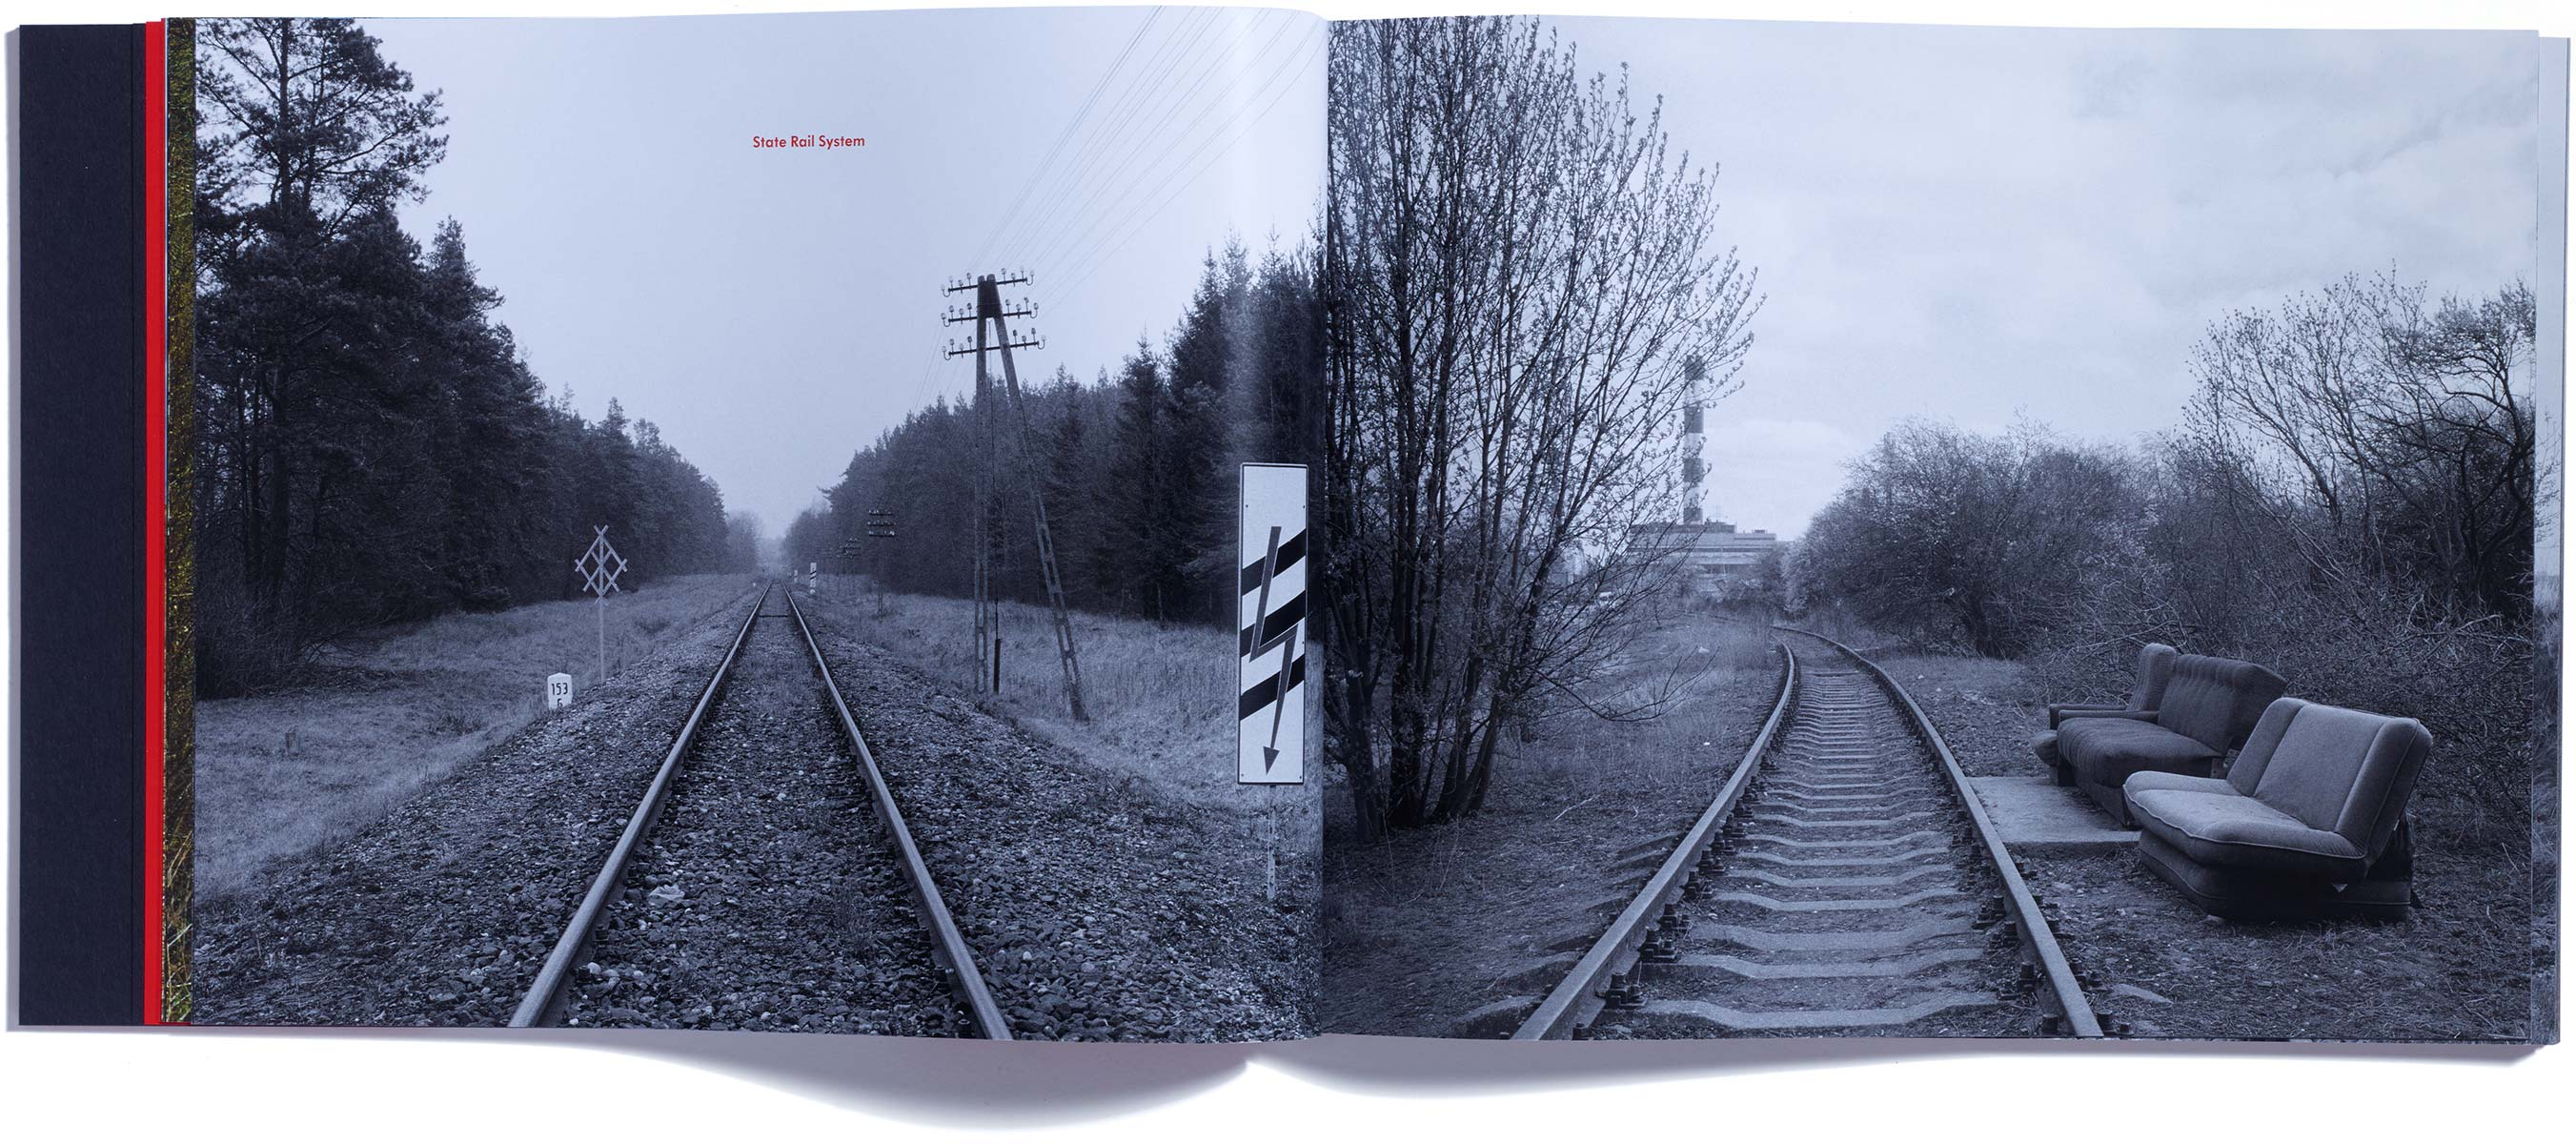 Himmelstrasse, Brian Griffin, published by Browns Editions, designed by Browns DesignHimmelstrasse, Brian Griffin, published by Browns Editions, designed by Browns Design, book, photography